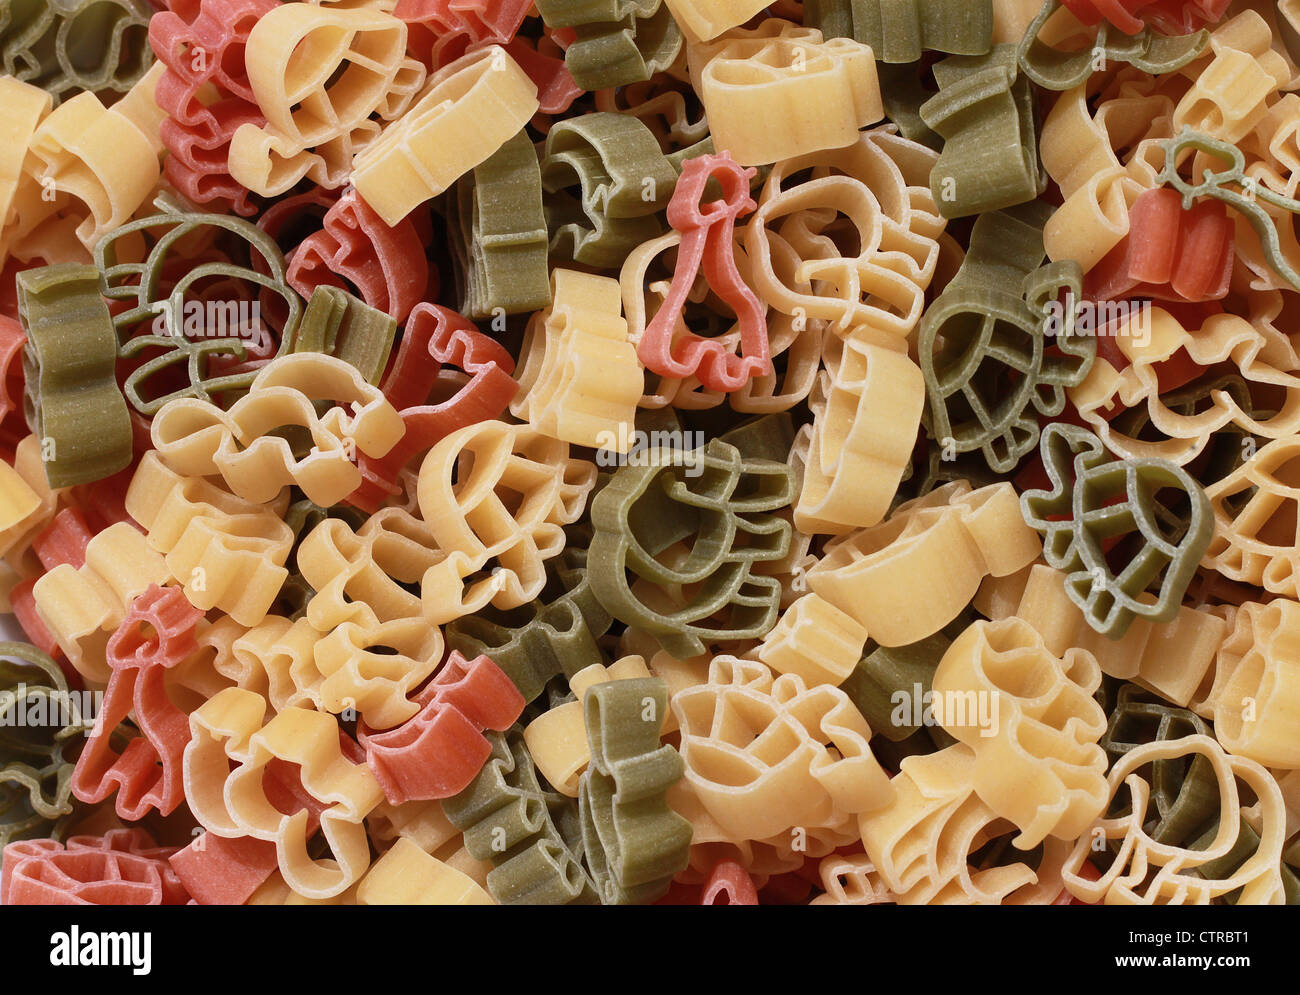 Italian pasta of durum wheat semolina with tomato and spinach in form of various zoo animals. Funny for children. - Stock Image